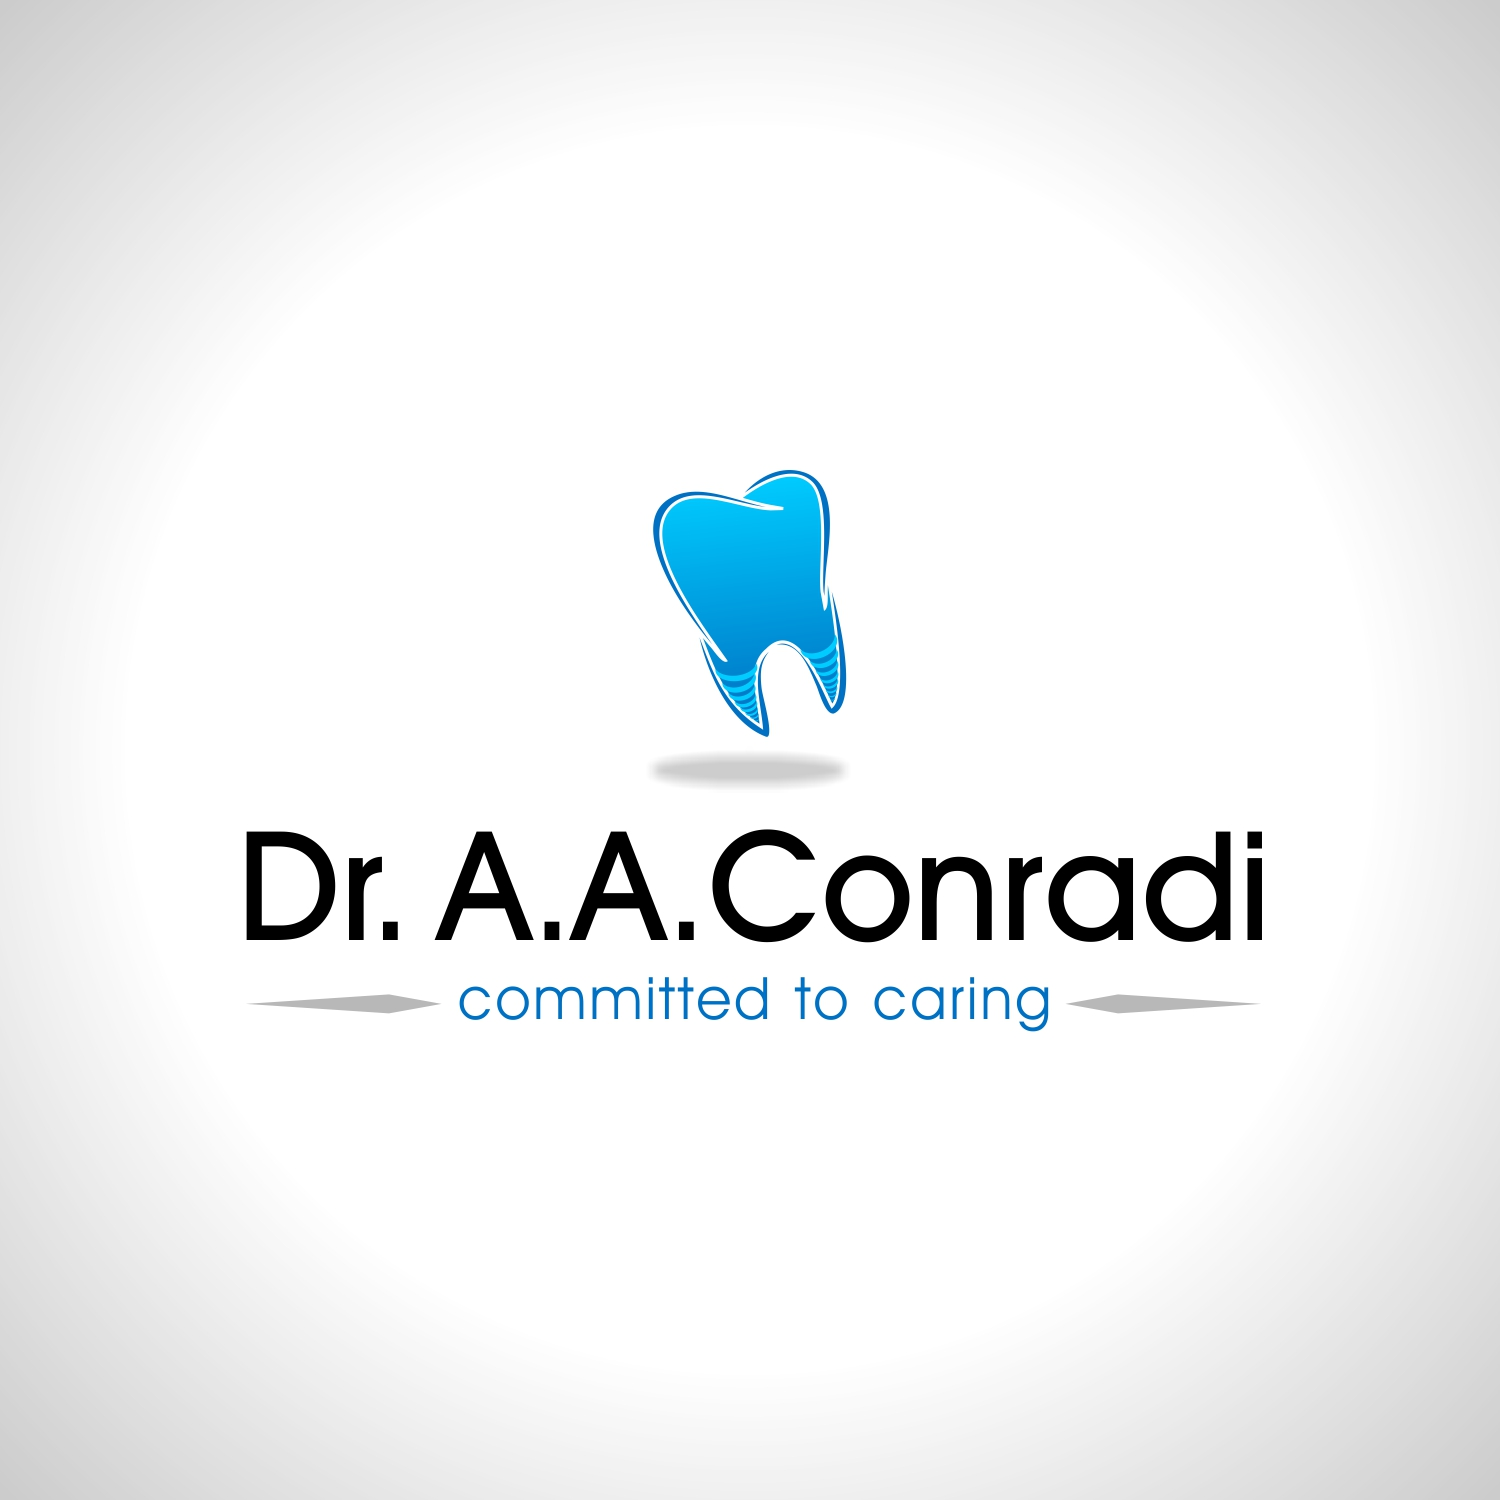 Logo Design by martinz - Entry No. 70 in the Logo Design Contest Unique Logo Design Wanted for Dr. A.A. Conradi.